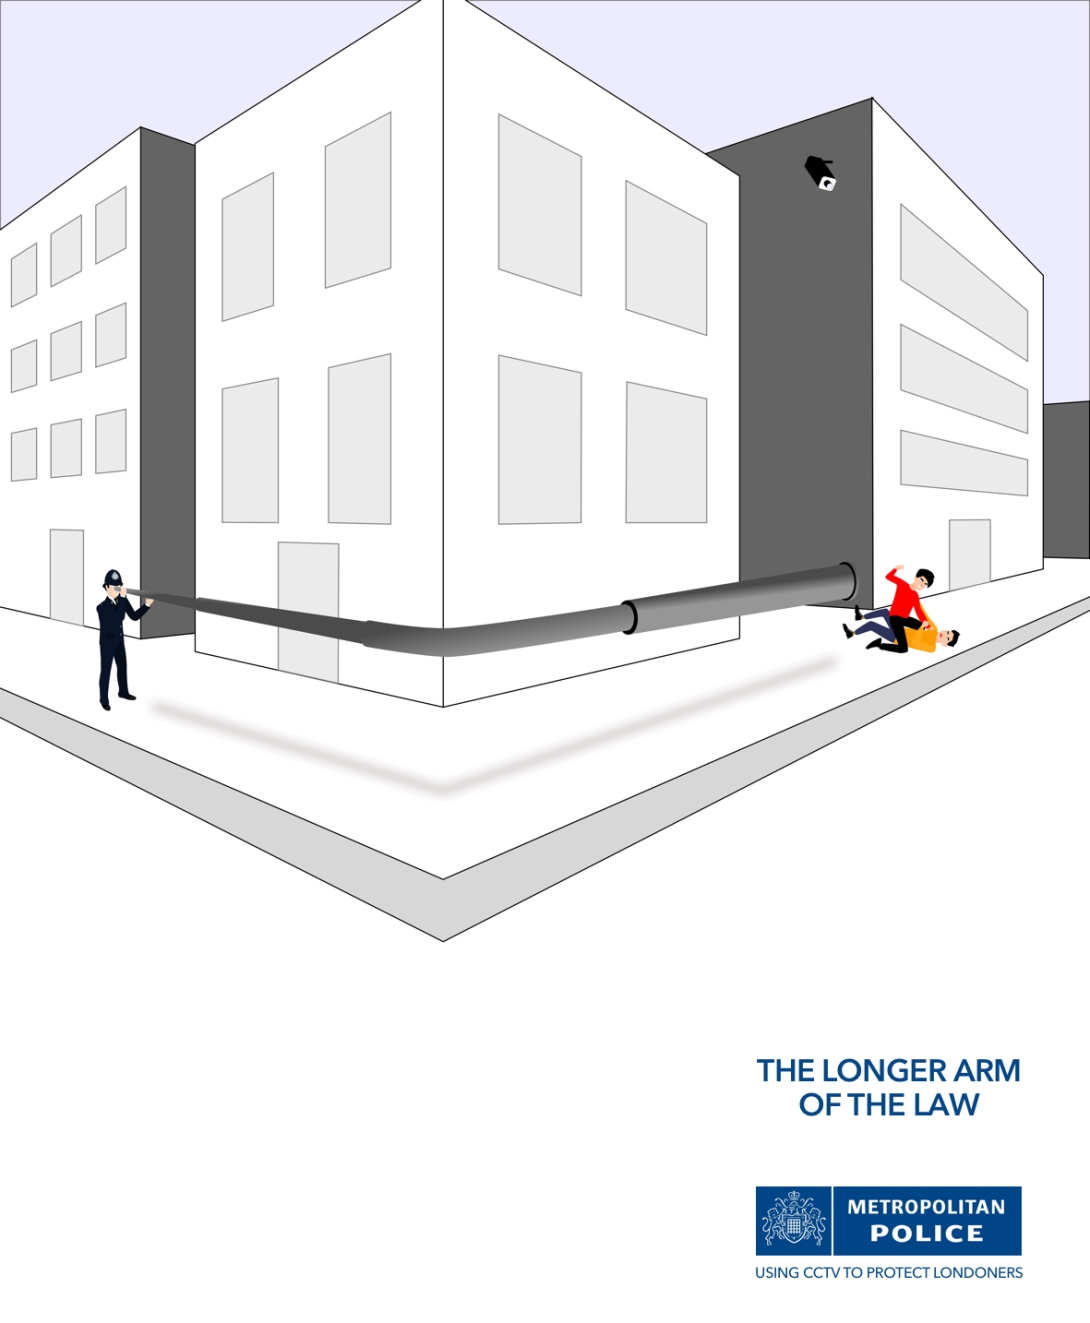 advertising idea for the London Metropolitan Police - CCTV - the longer arm of the law